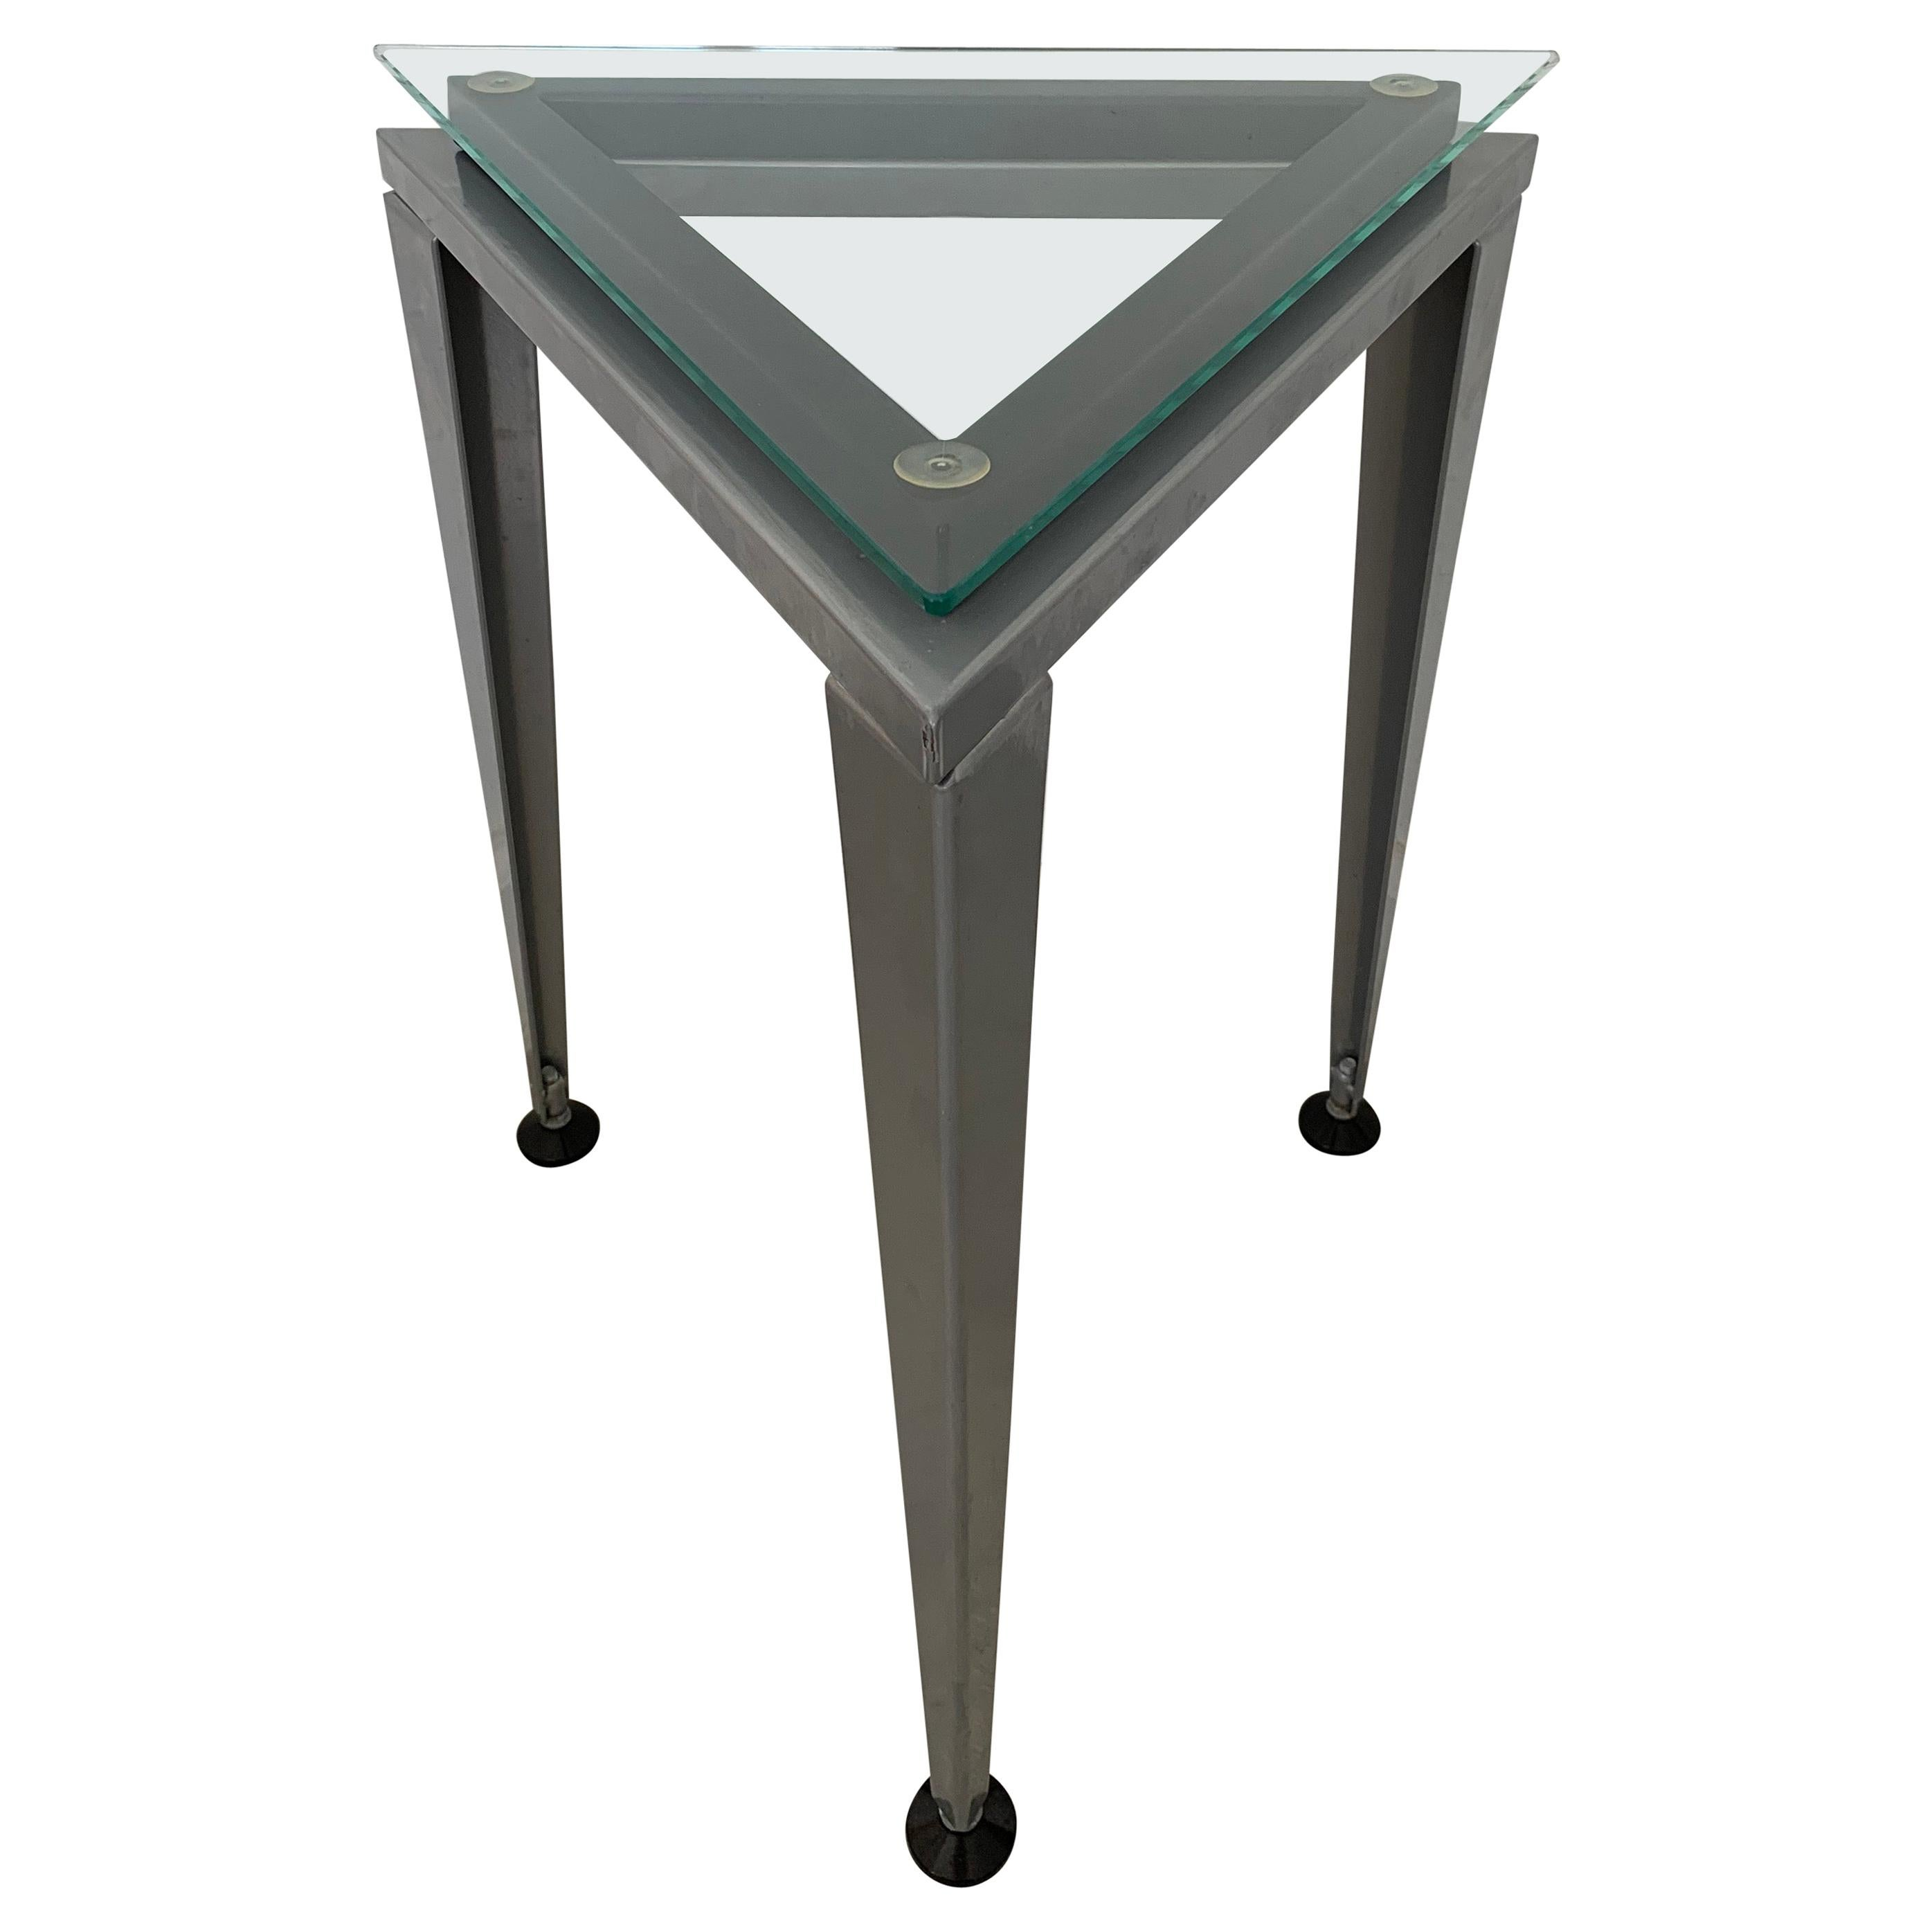 Postmodern Triangular Glass and Steel Occasional or Drinks Tables